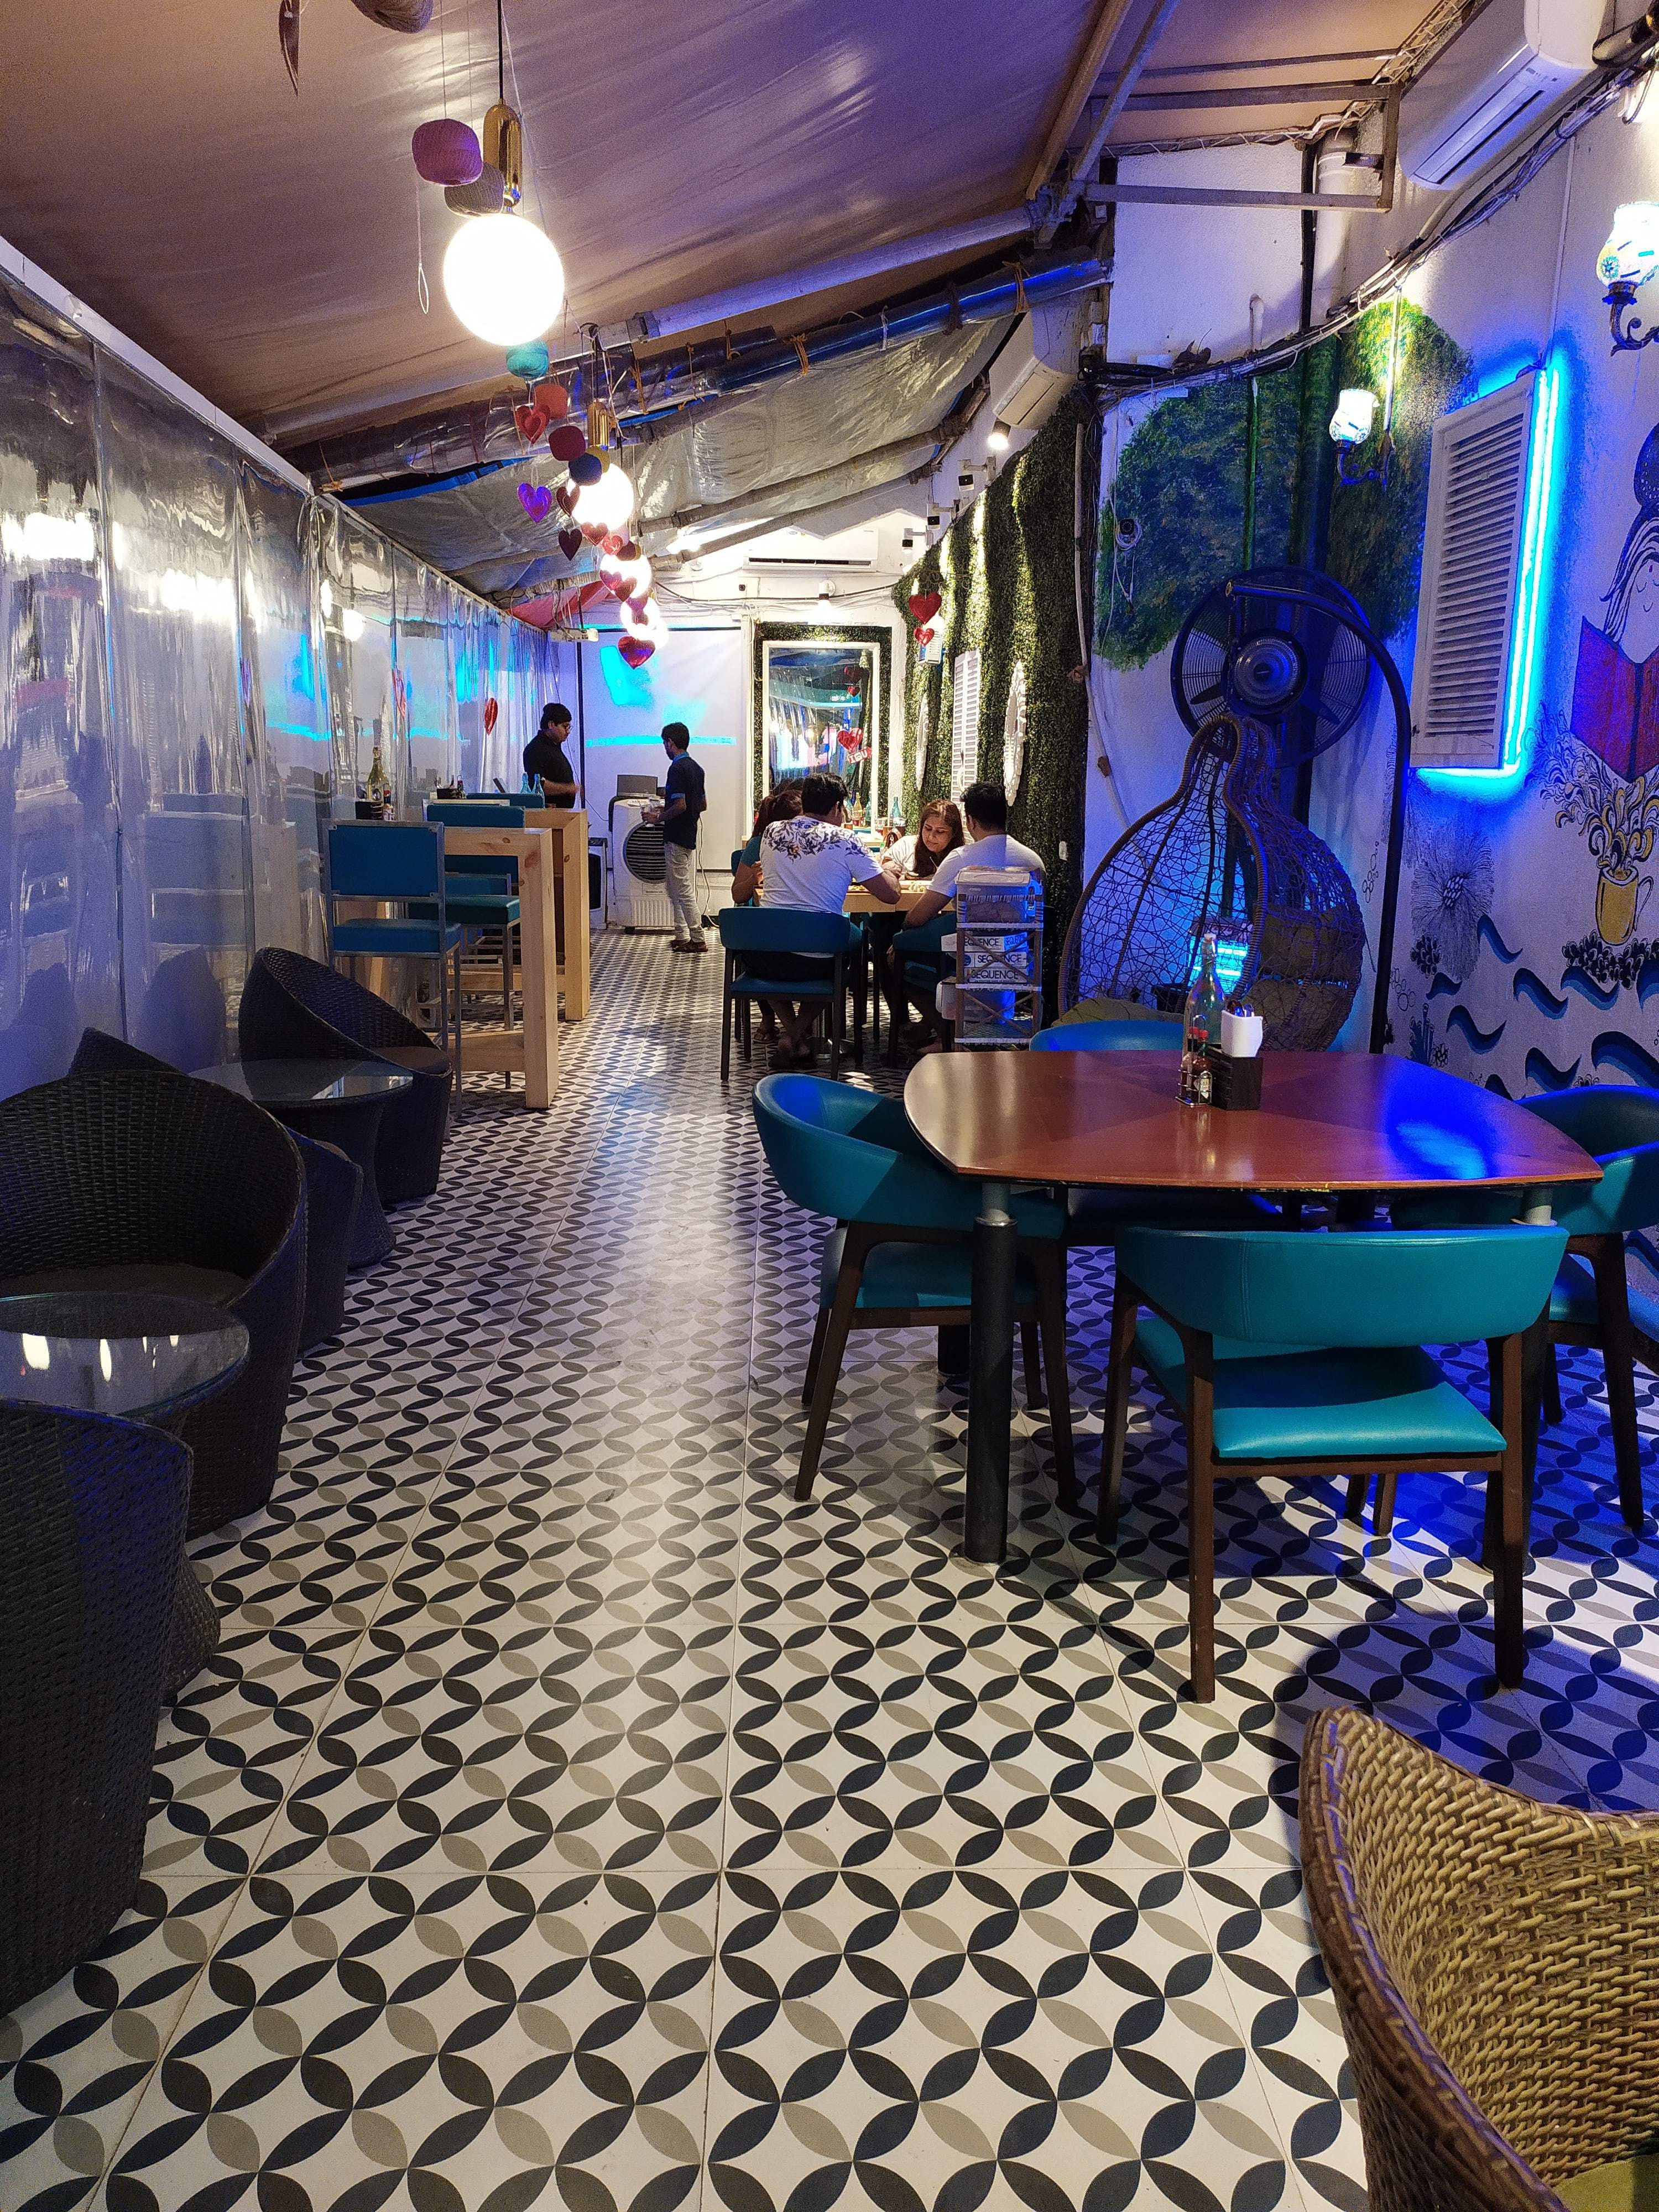 Drop By Once Upon A Dine For Amazing Food And Ambience!!